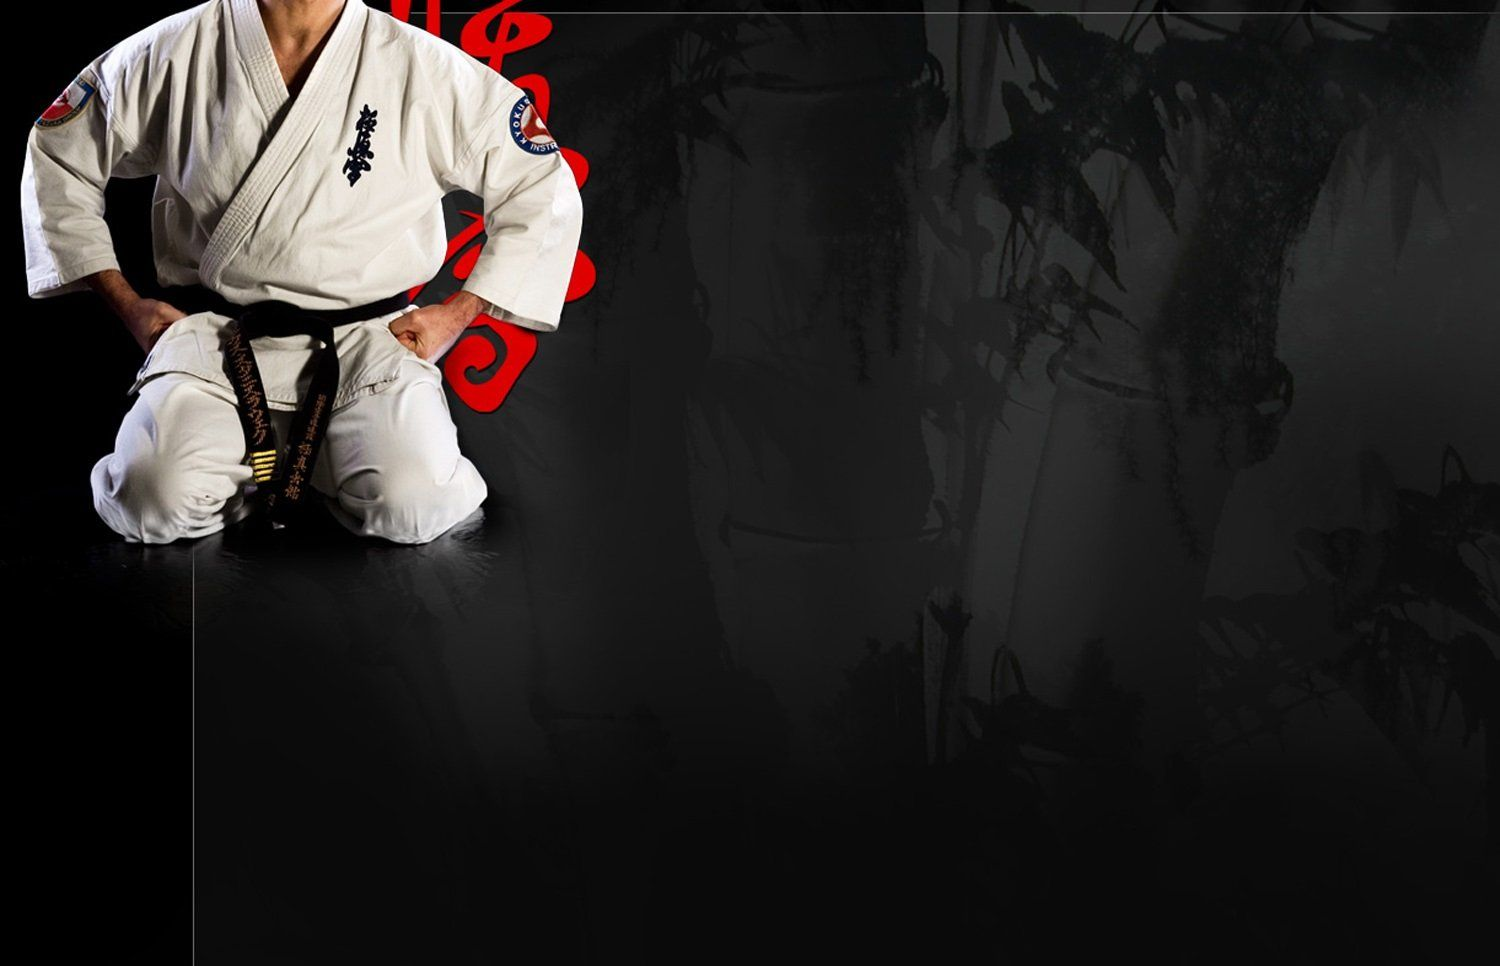 1500x966 Karate Wallpapers Group (72+)